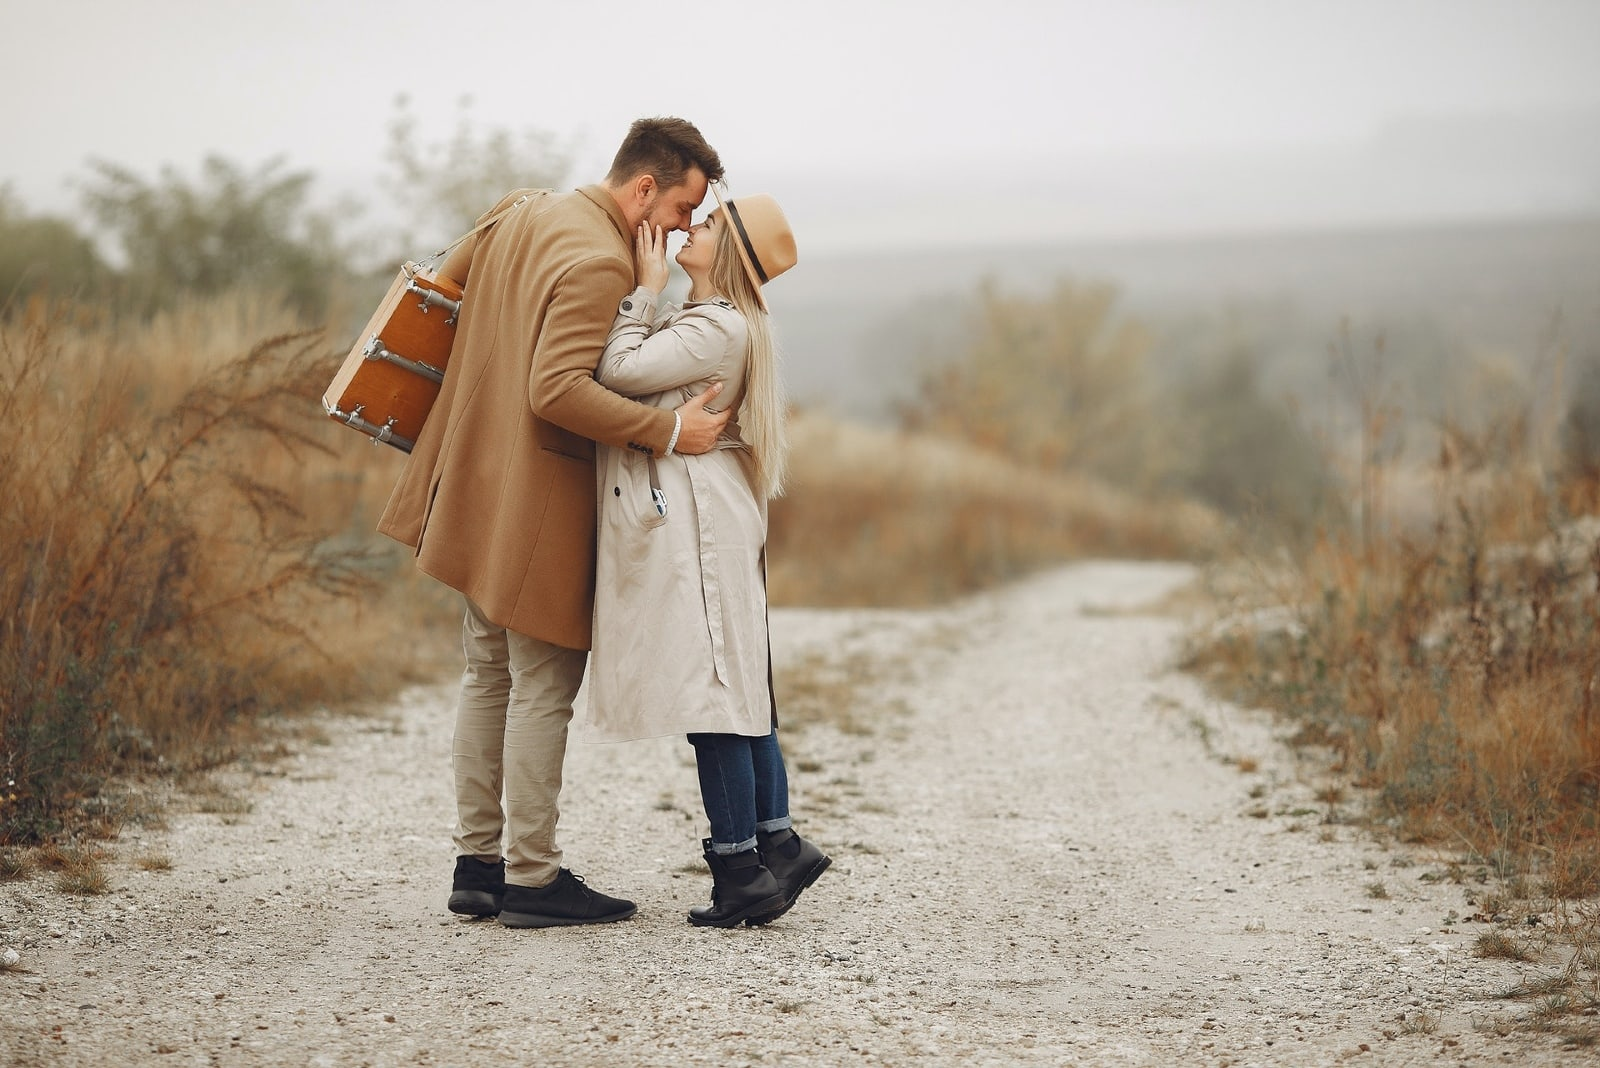 woman touching man's face while standing on rural path